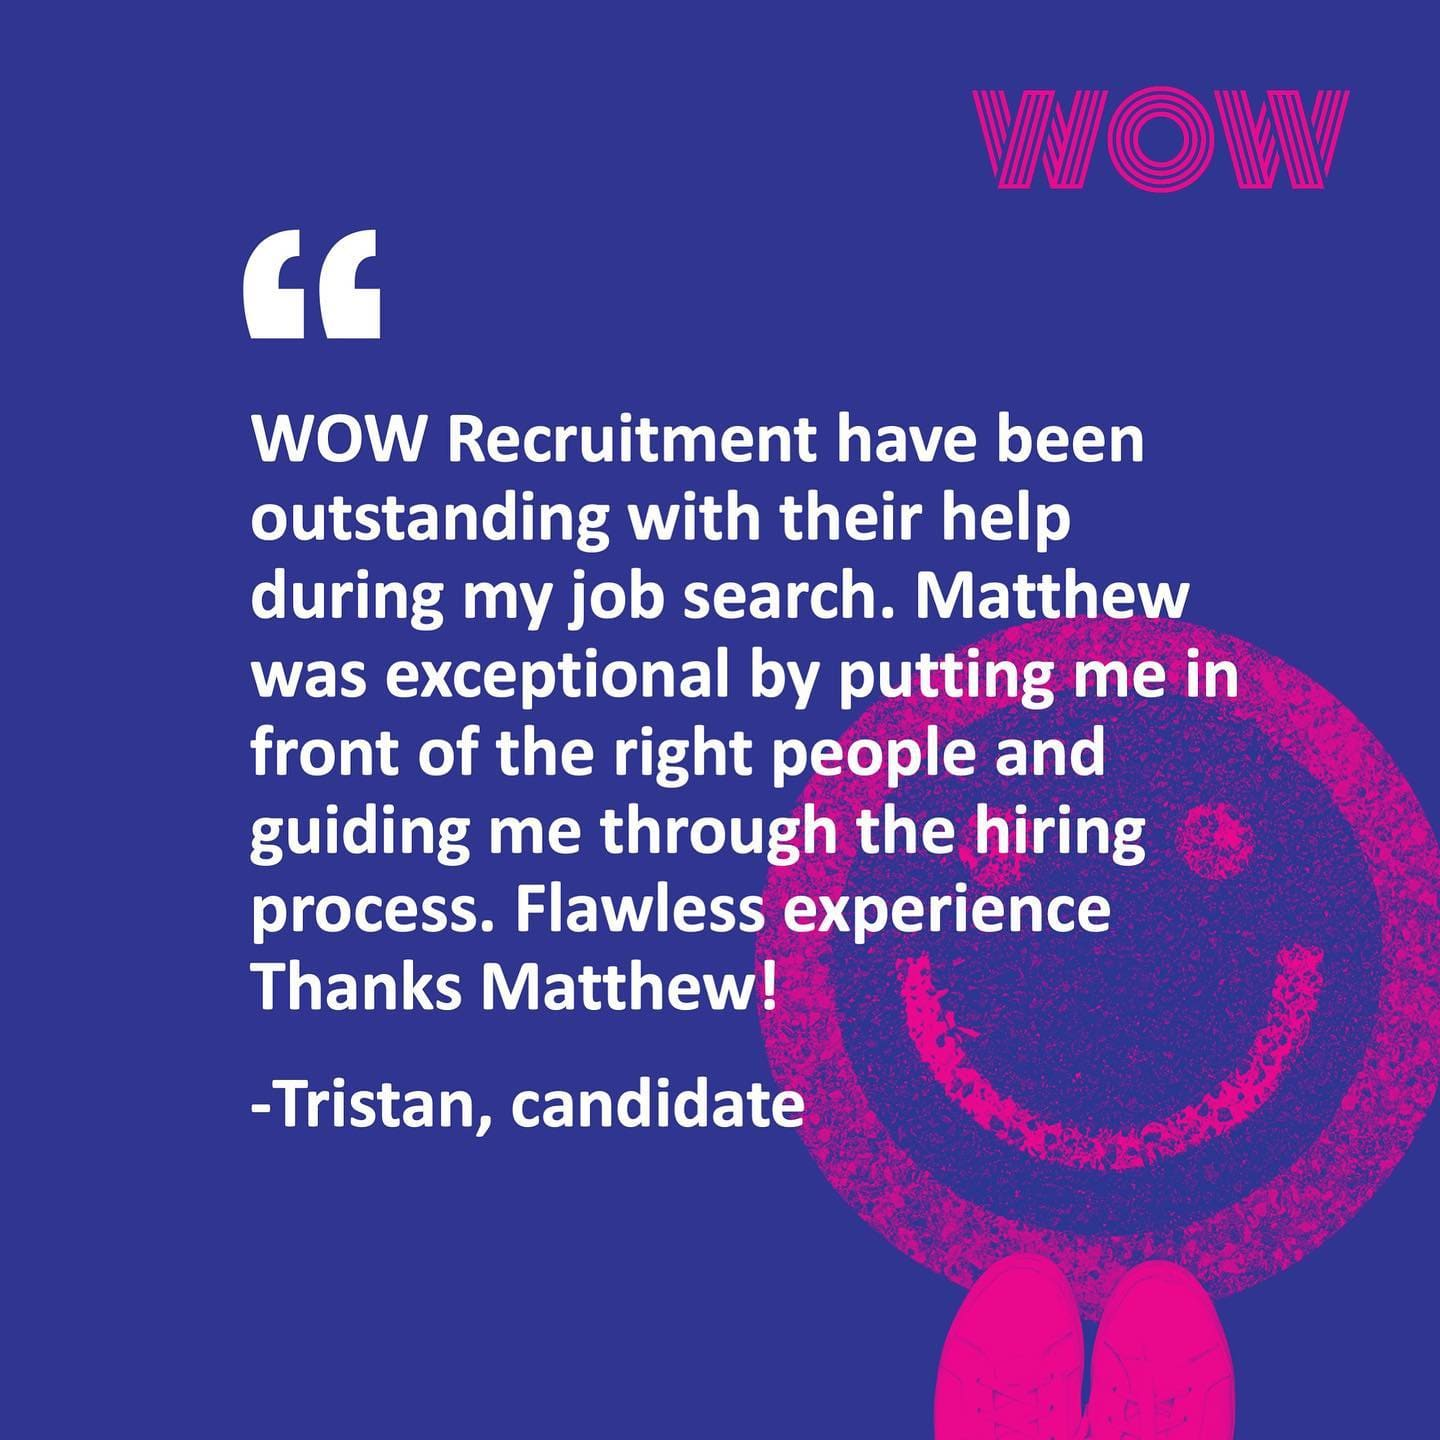 We love receiving this kind of candidate feedback! Thank you for the testimonial Tristan, we're so happy that Matt was able to successfully help you with your job search